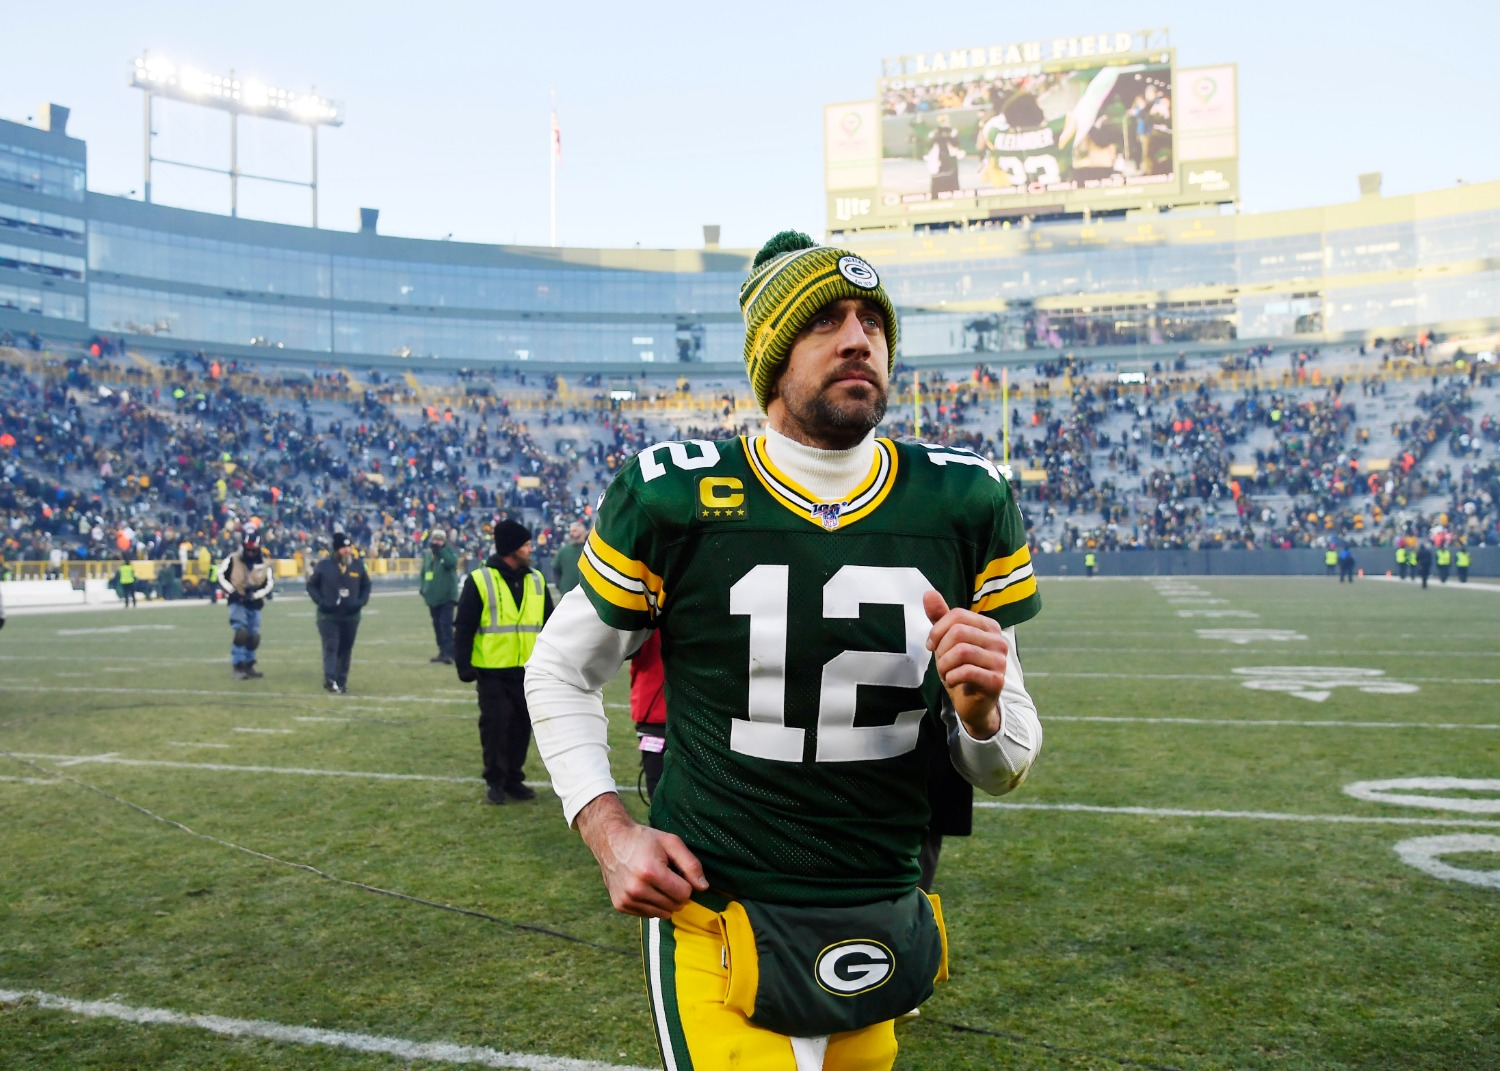 Aaron Rodgers just exposed the real problem with the Jacob Blake shooting.